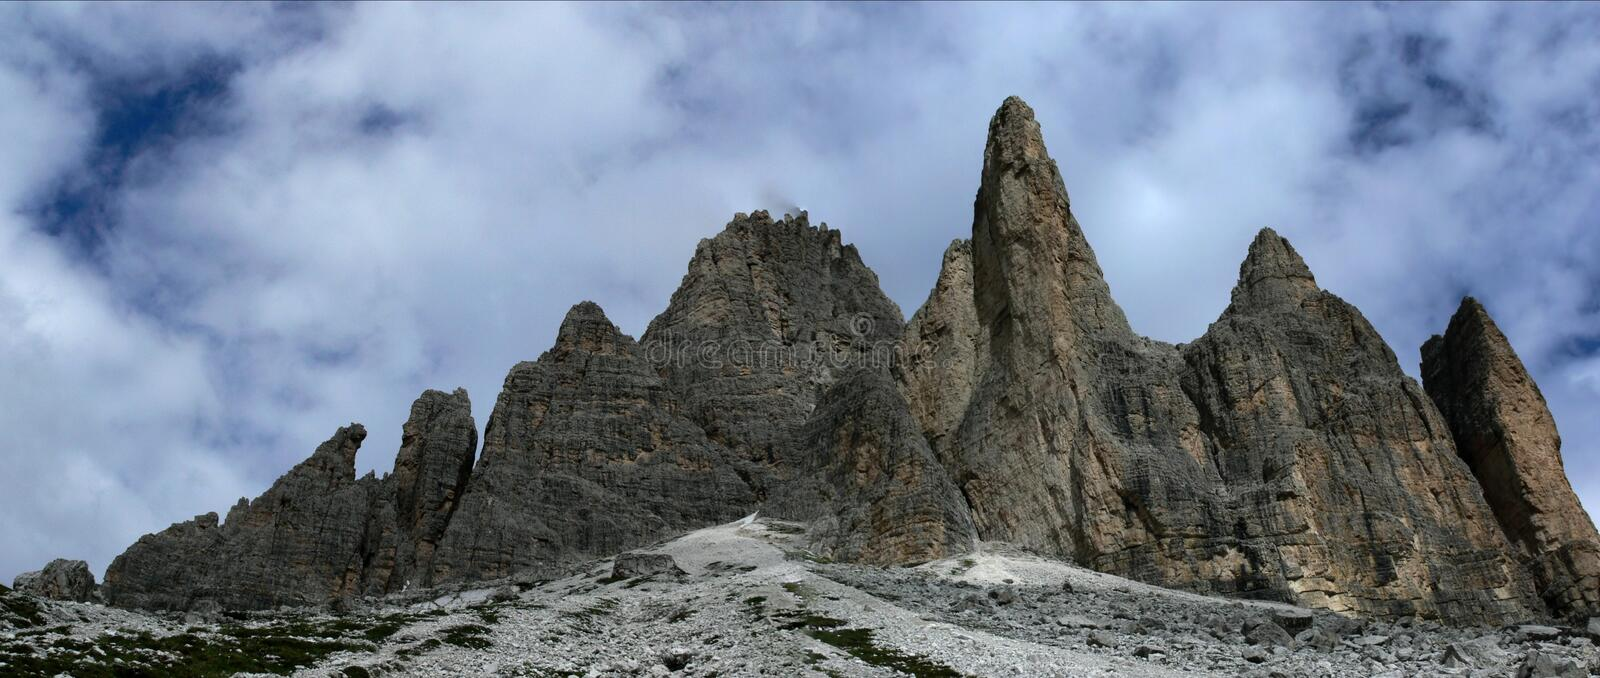 Rocks in the Dolomite royalty free stock images